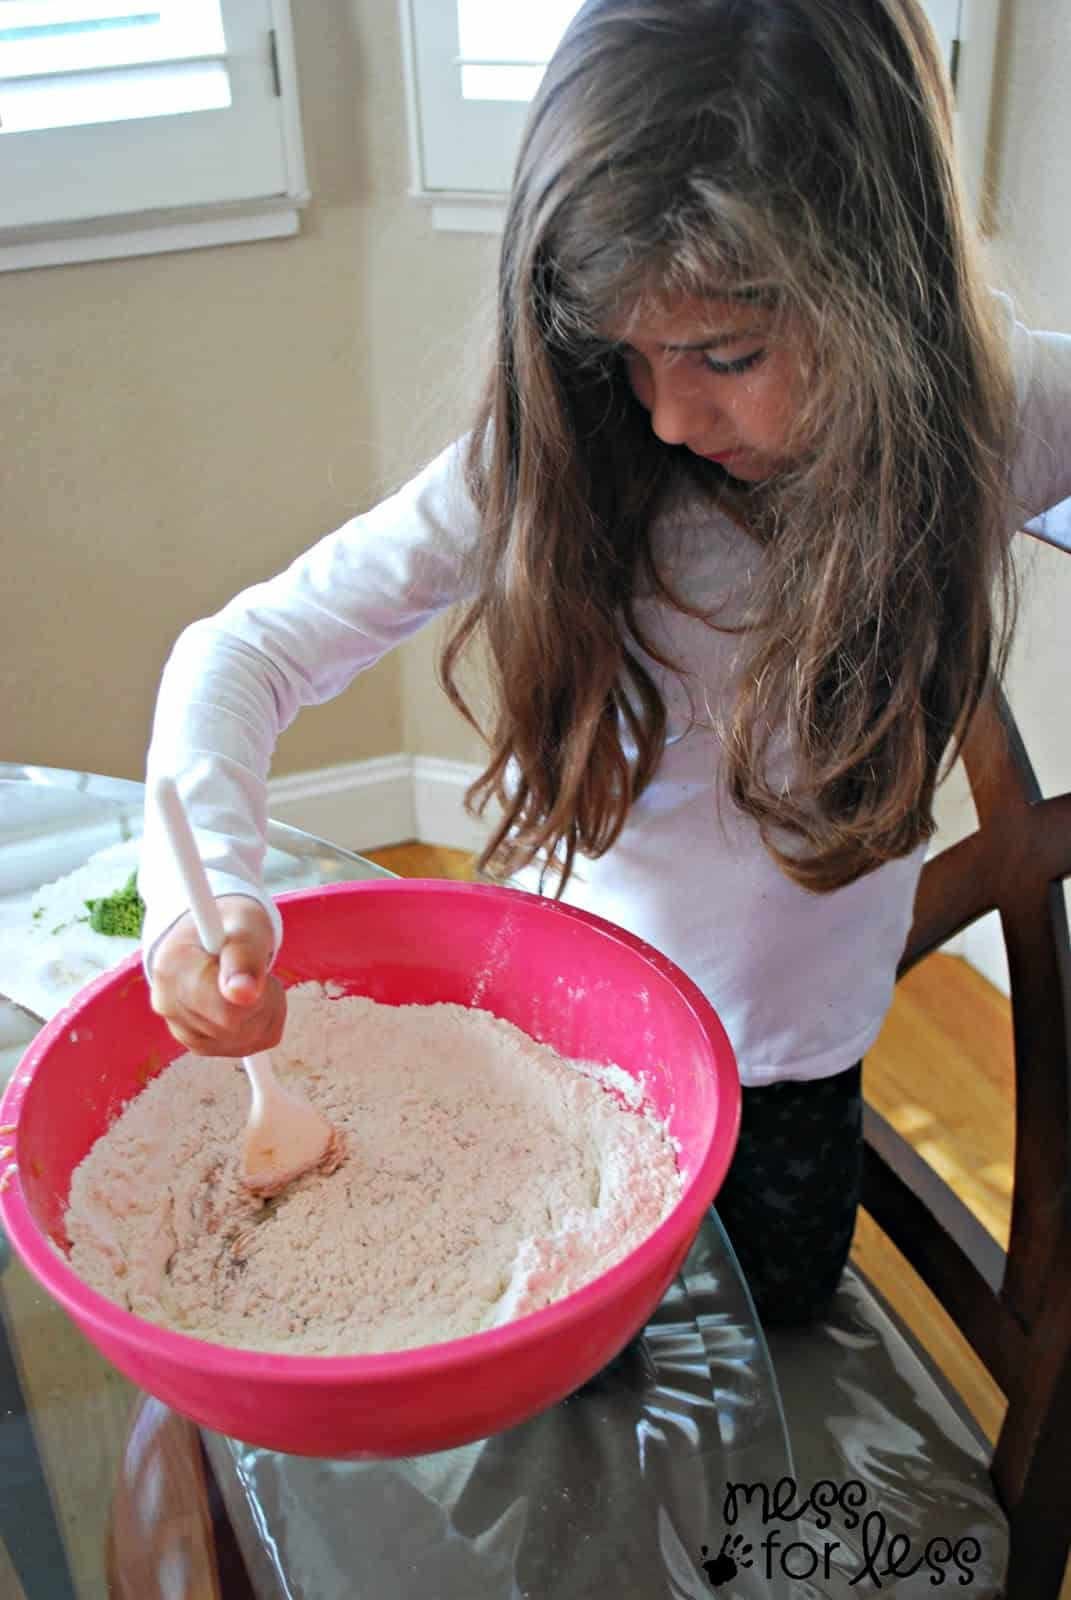 child making zucchini bread